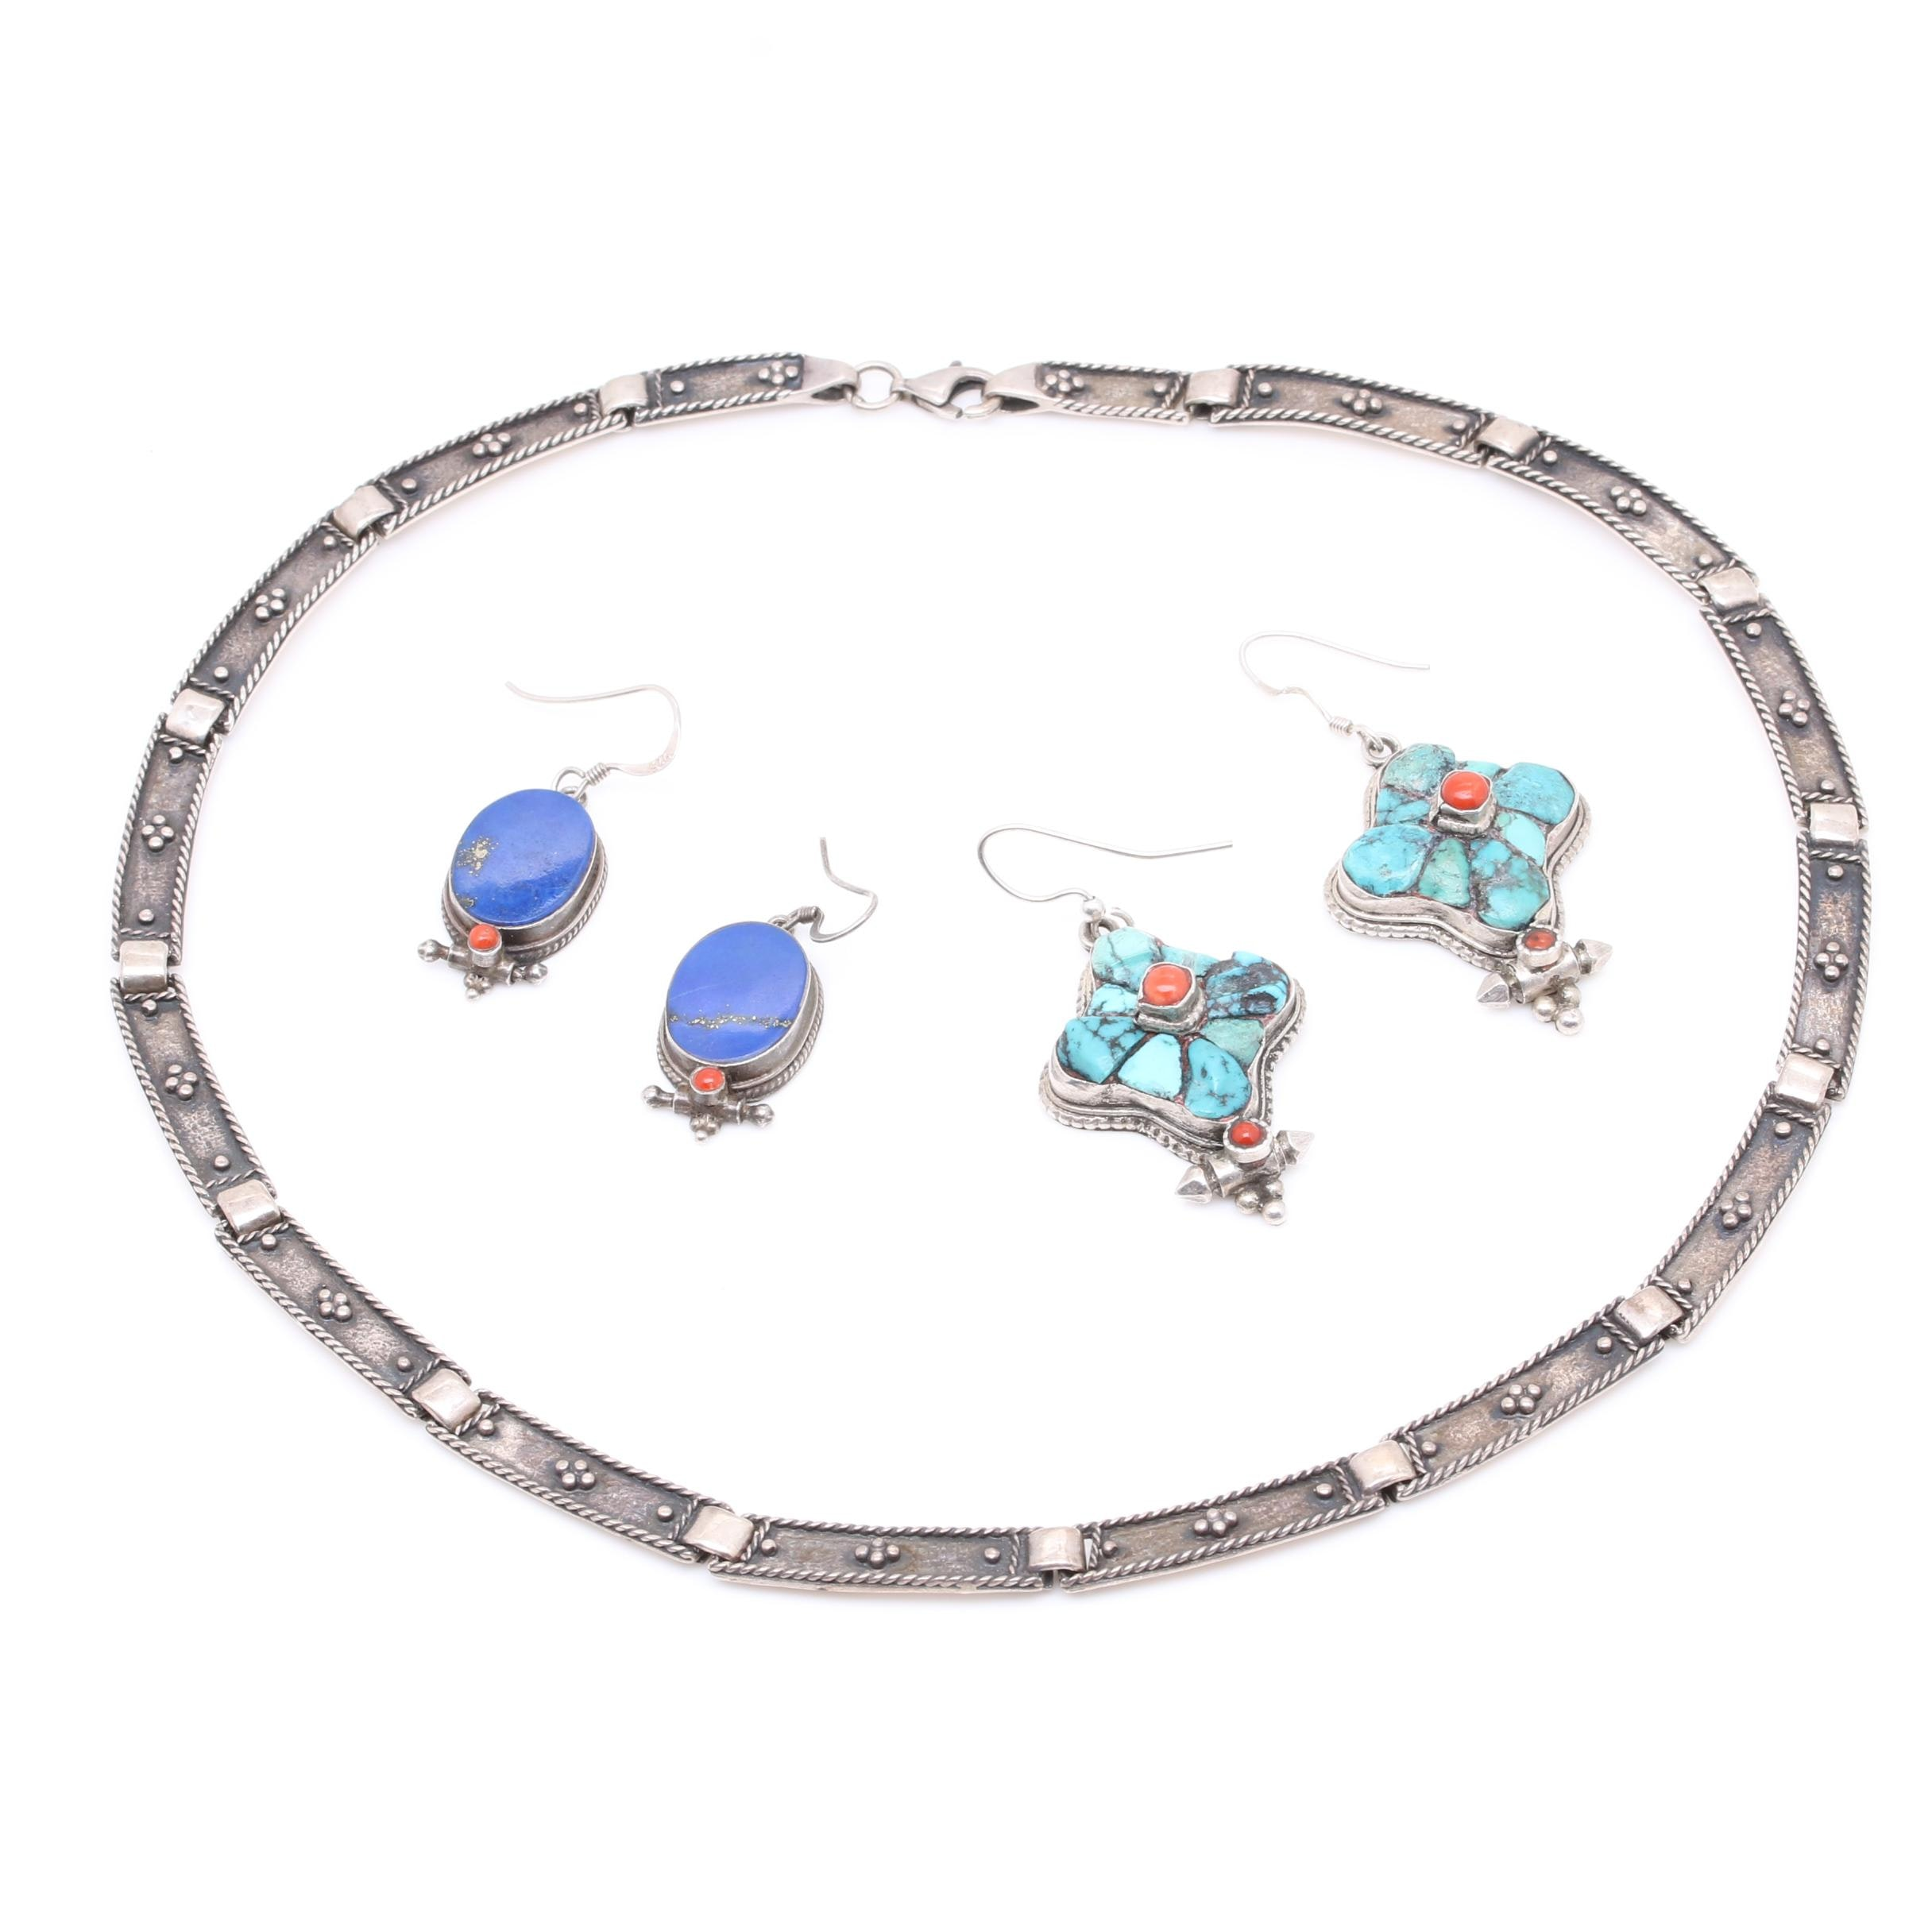 Sterling Silver Lapis Lazuli, Turquoise and Coral Earrings and Necklace